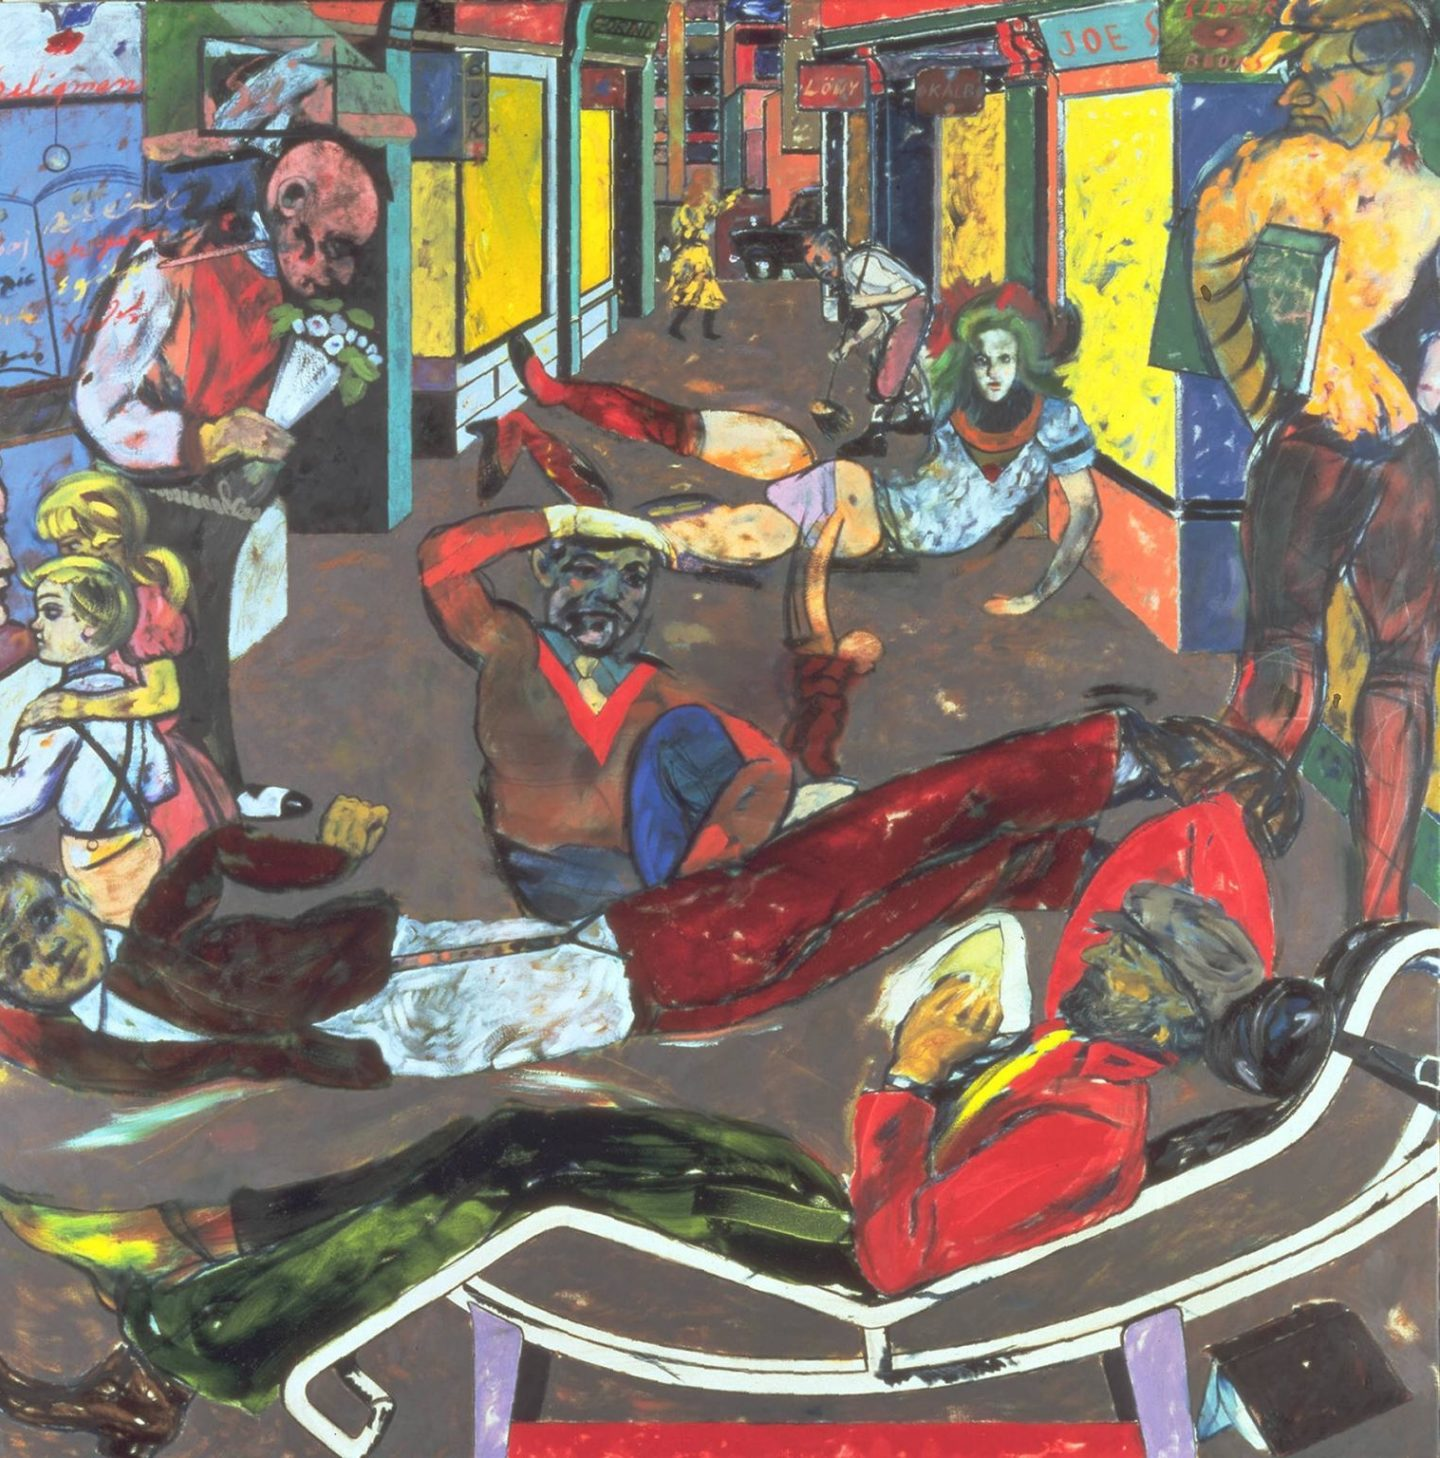 "<p>Diasporist painter <span class=""caps"">R.B.</span> Kitaj's 1984 painting ""Cecil Court, London <span class=""caps"">W.C.</span>2. (The Refugees)"" depicts diasporic Yiddish life. <a href=""http://www.tate.org.uk/art/artworks/kitaj-cecil-court-london-w-c-2-the-refugees-t04115"">Tate Museum, London</a>.</p>"